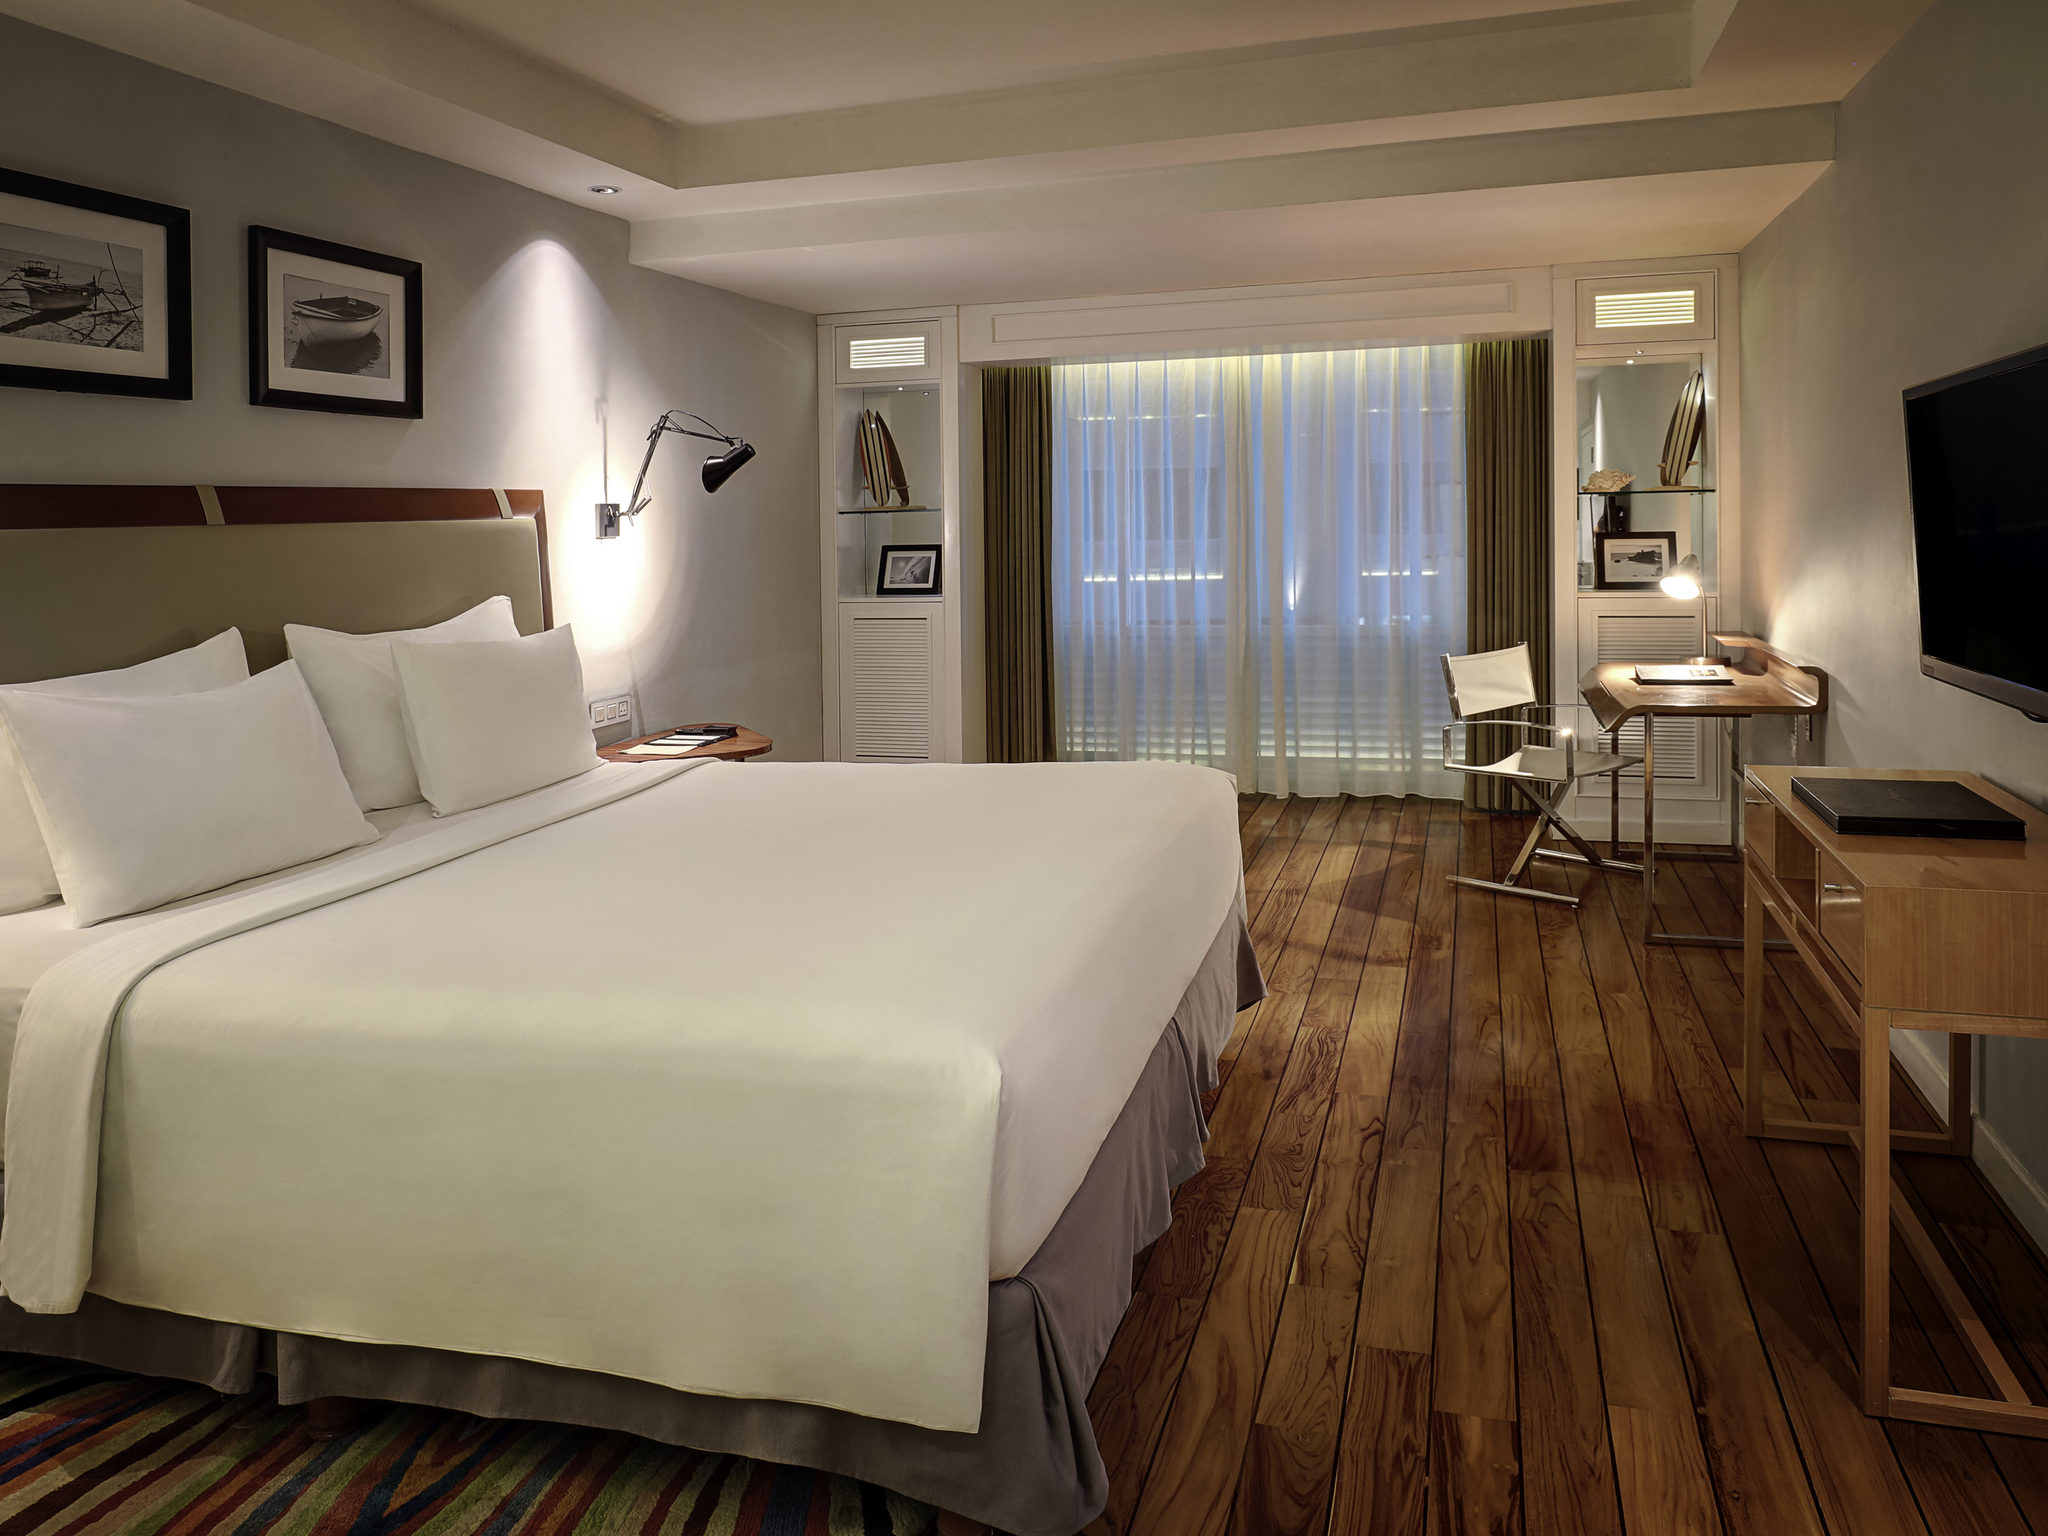 Rooms The Kuta Beach Heritage Hotel Bali Managed By Accorhotels